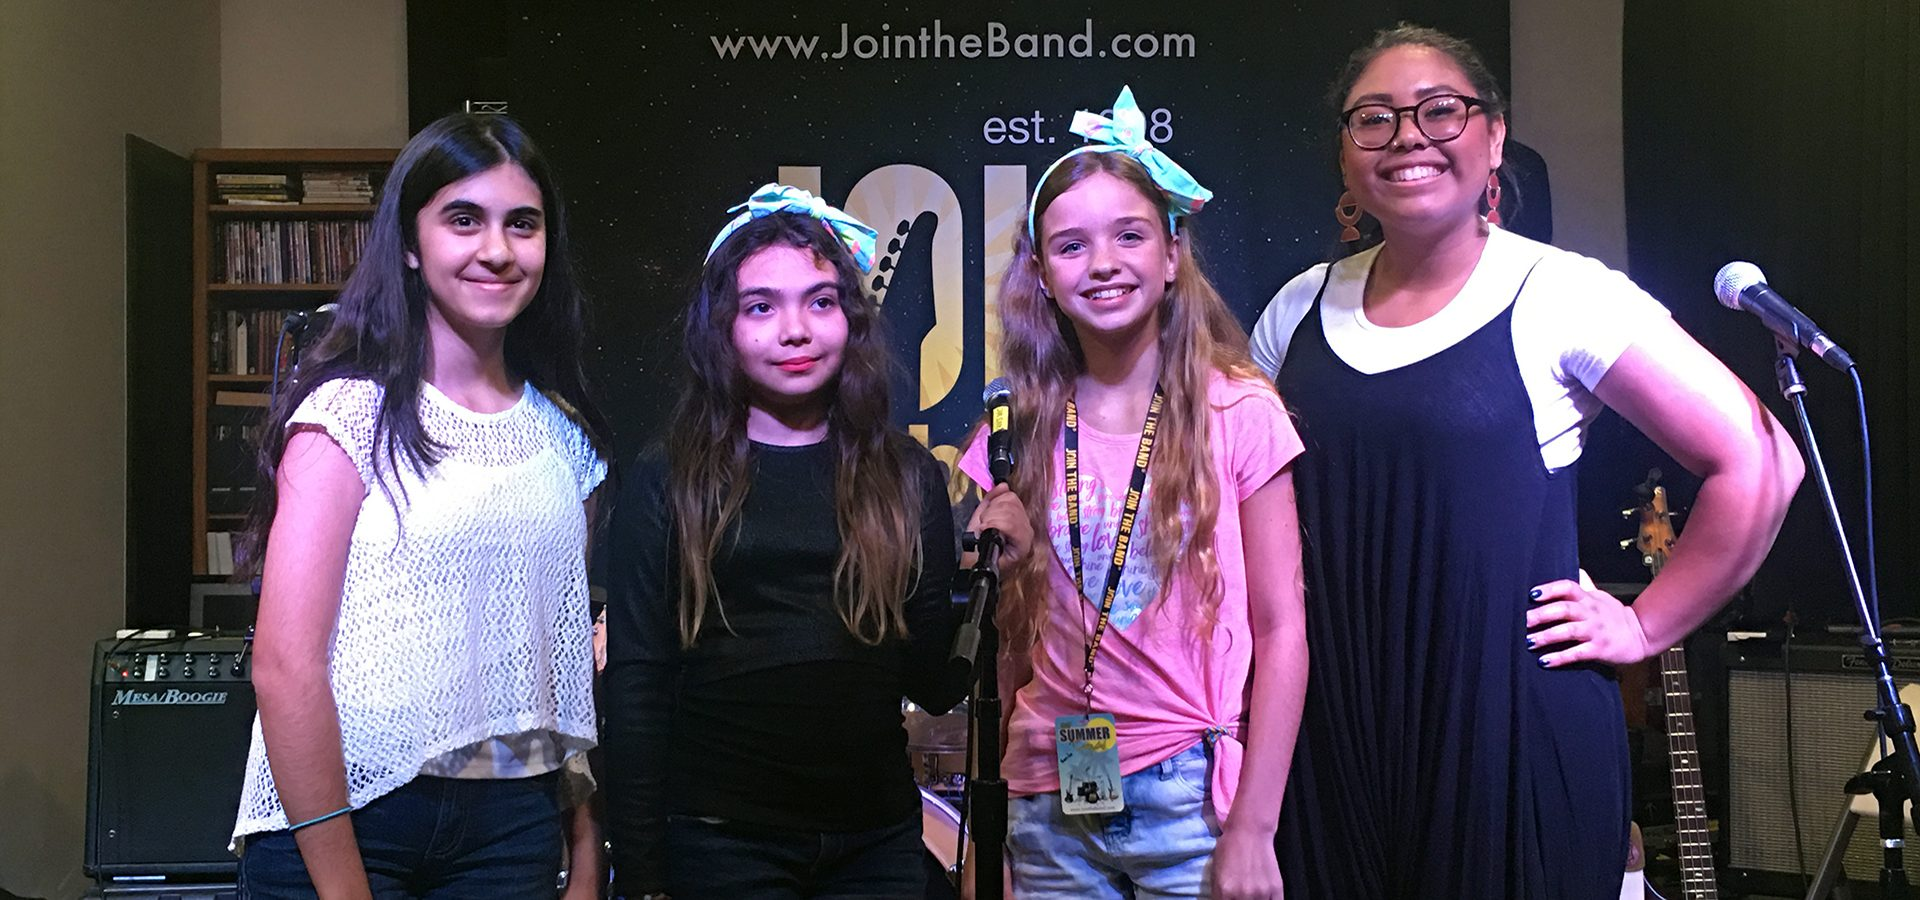 Singing Music Camp - 4 Girls - Sherman Oaks, Los Angeles - Join The Band